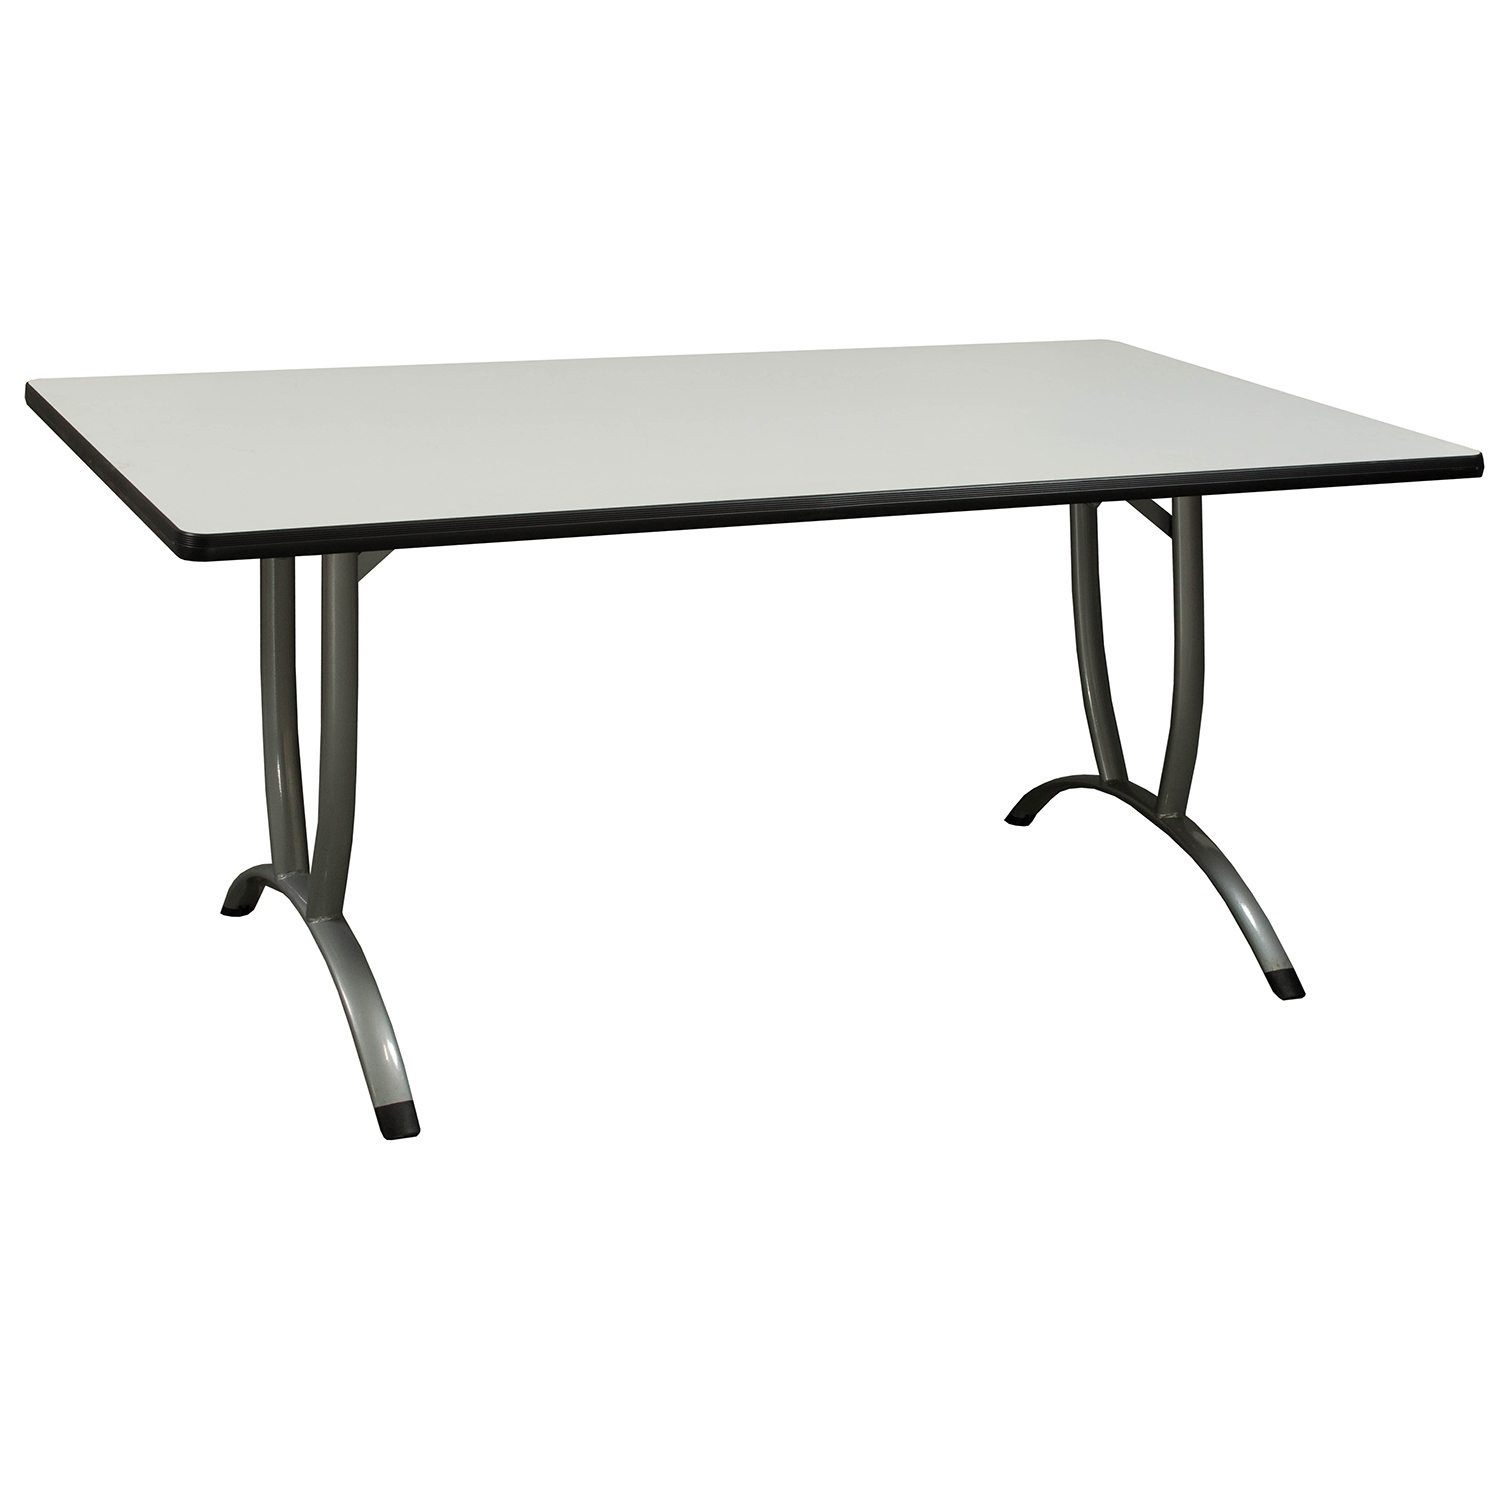 Folding Table Steelcase Vecta Used 3060 Inch Laminate Folding Table